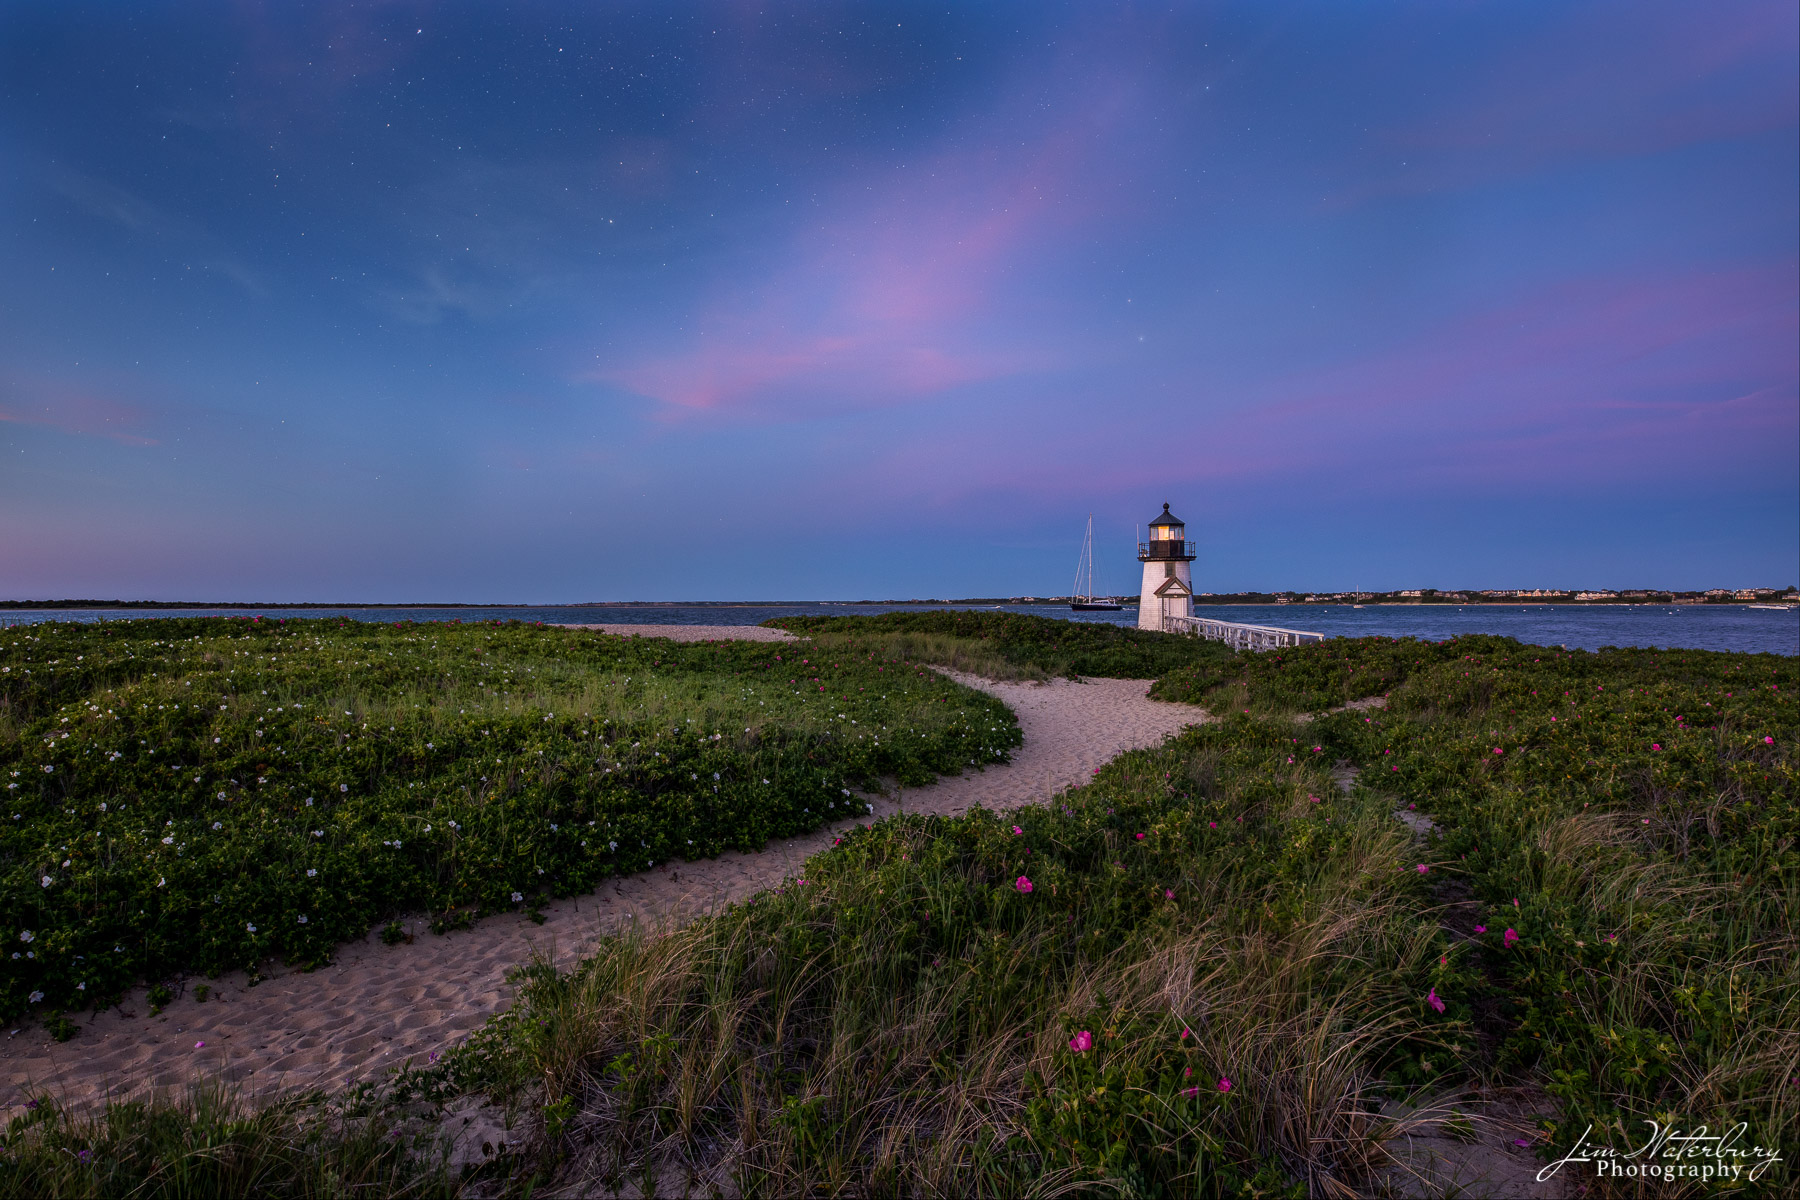 Brant Point, lighthouse, Nantucket, night, pink, sunset, sand, flowers, photo